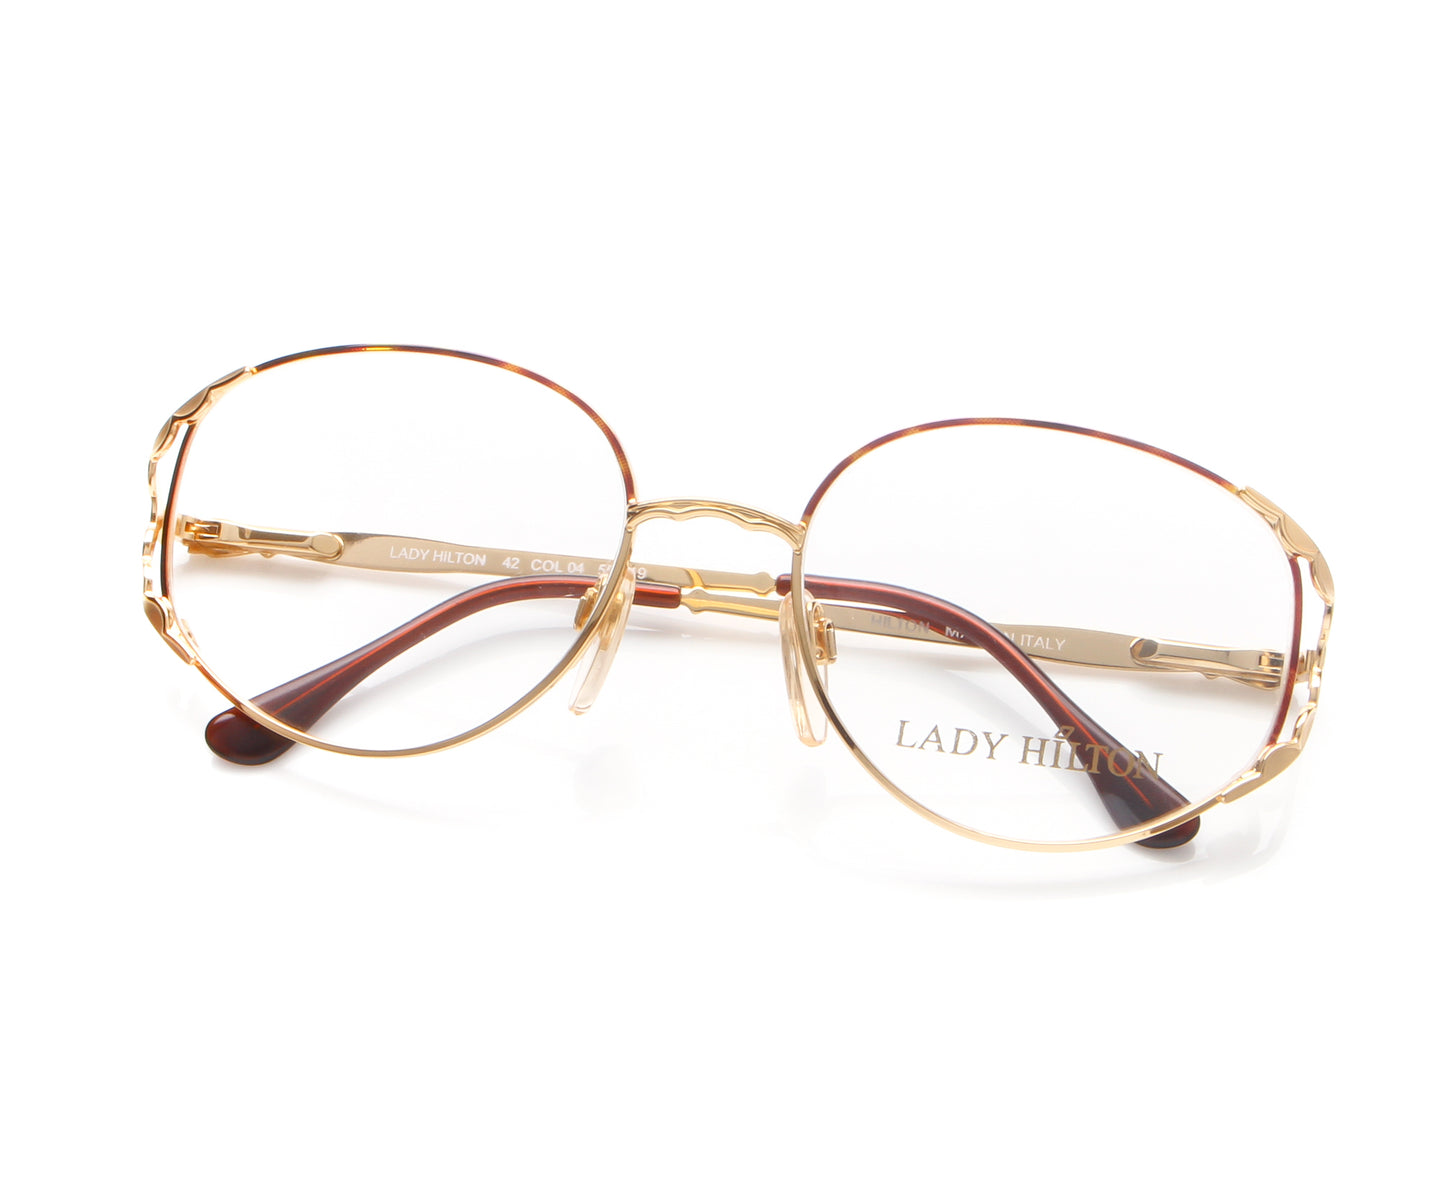 Vintage Hilton Lady Hilton 42 04 22 KGP Thumb, Hilton , glasses frames, eyeglasses online, eyeglass frames, mens glasses, womens glasses, buy glasses online, designer eyeglasses, vintage sunglasses, retro sunglasses, vintage glasses, sunglass, eyeglass, glasses, lens, vintage frames company, vf